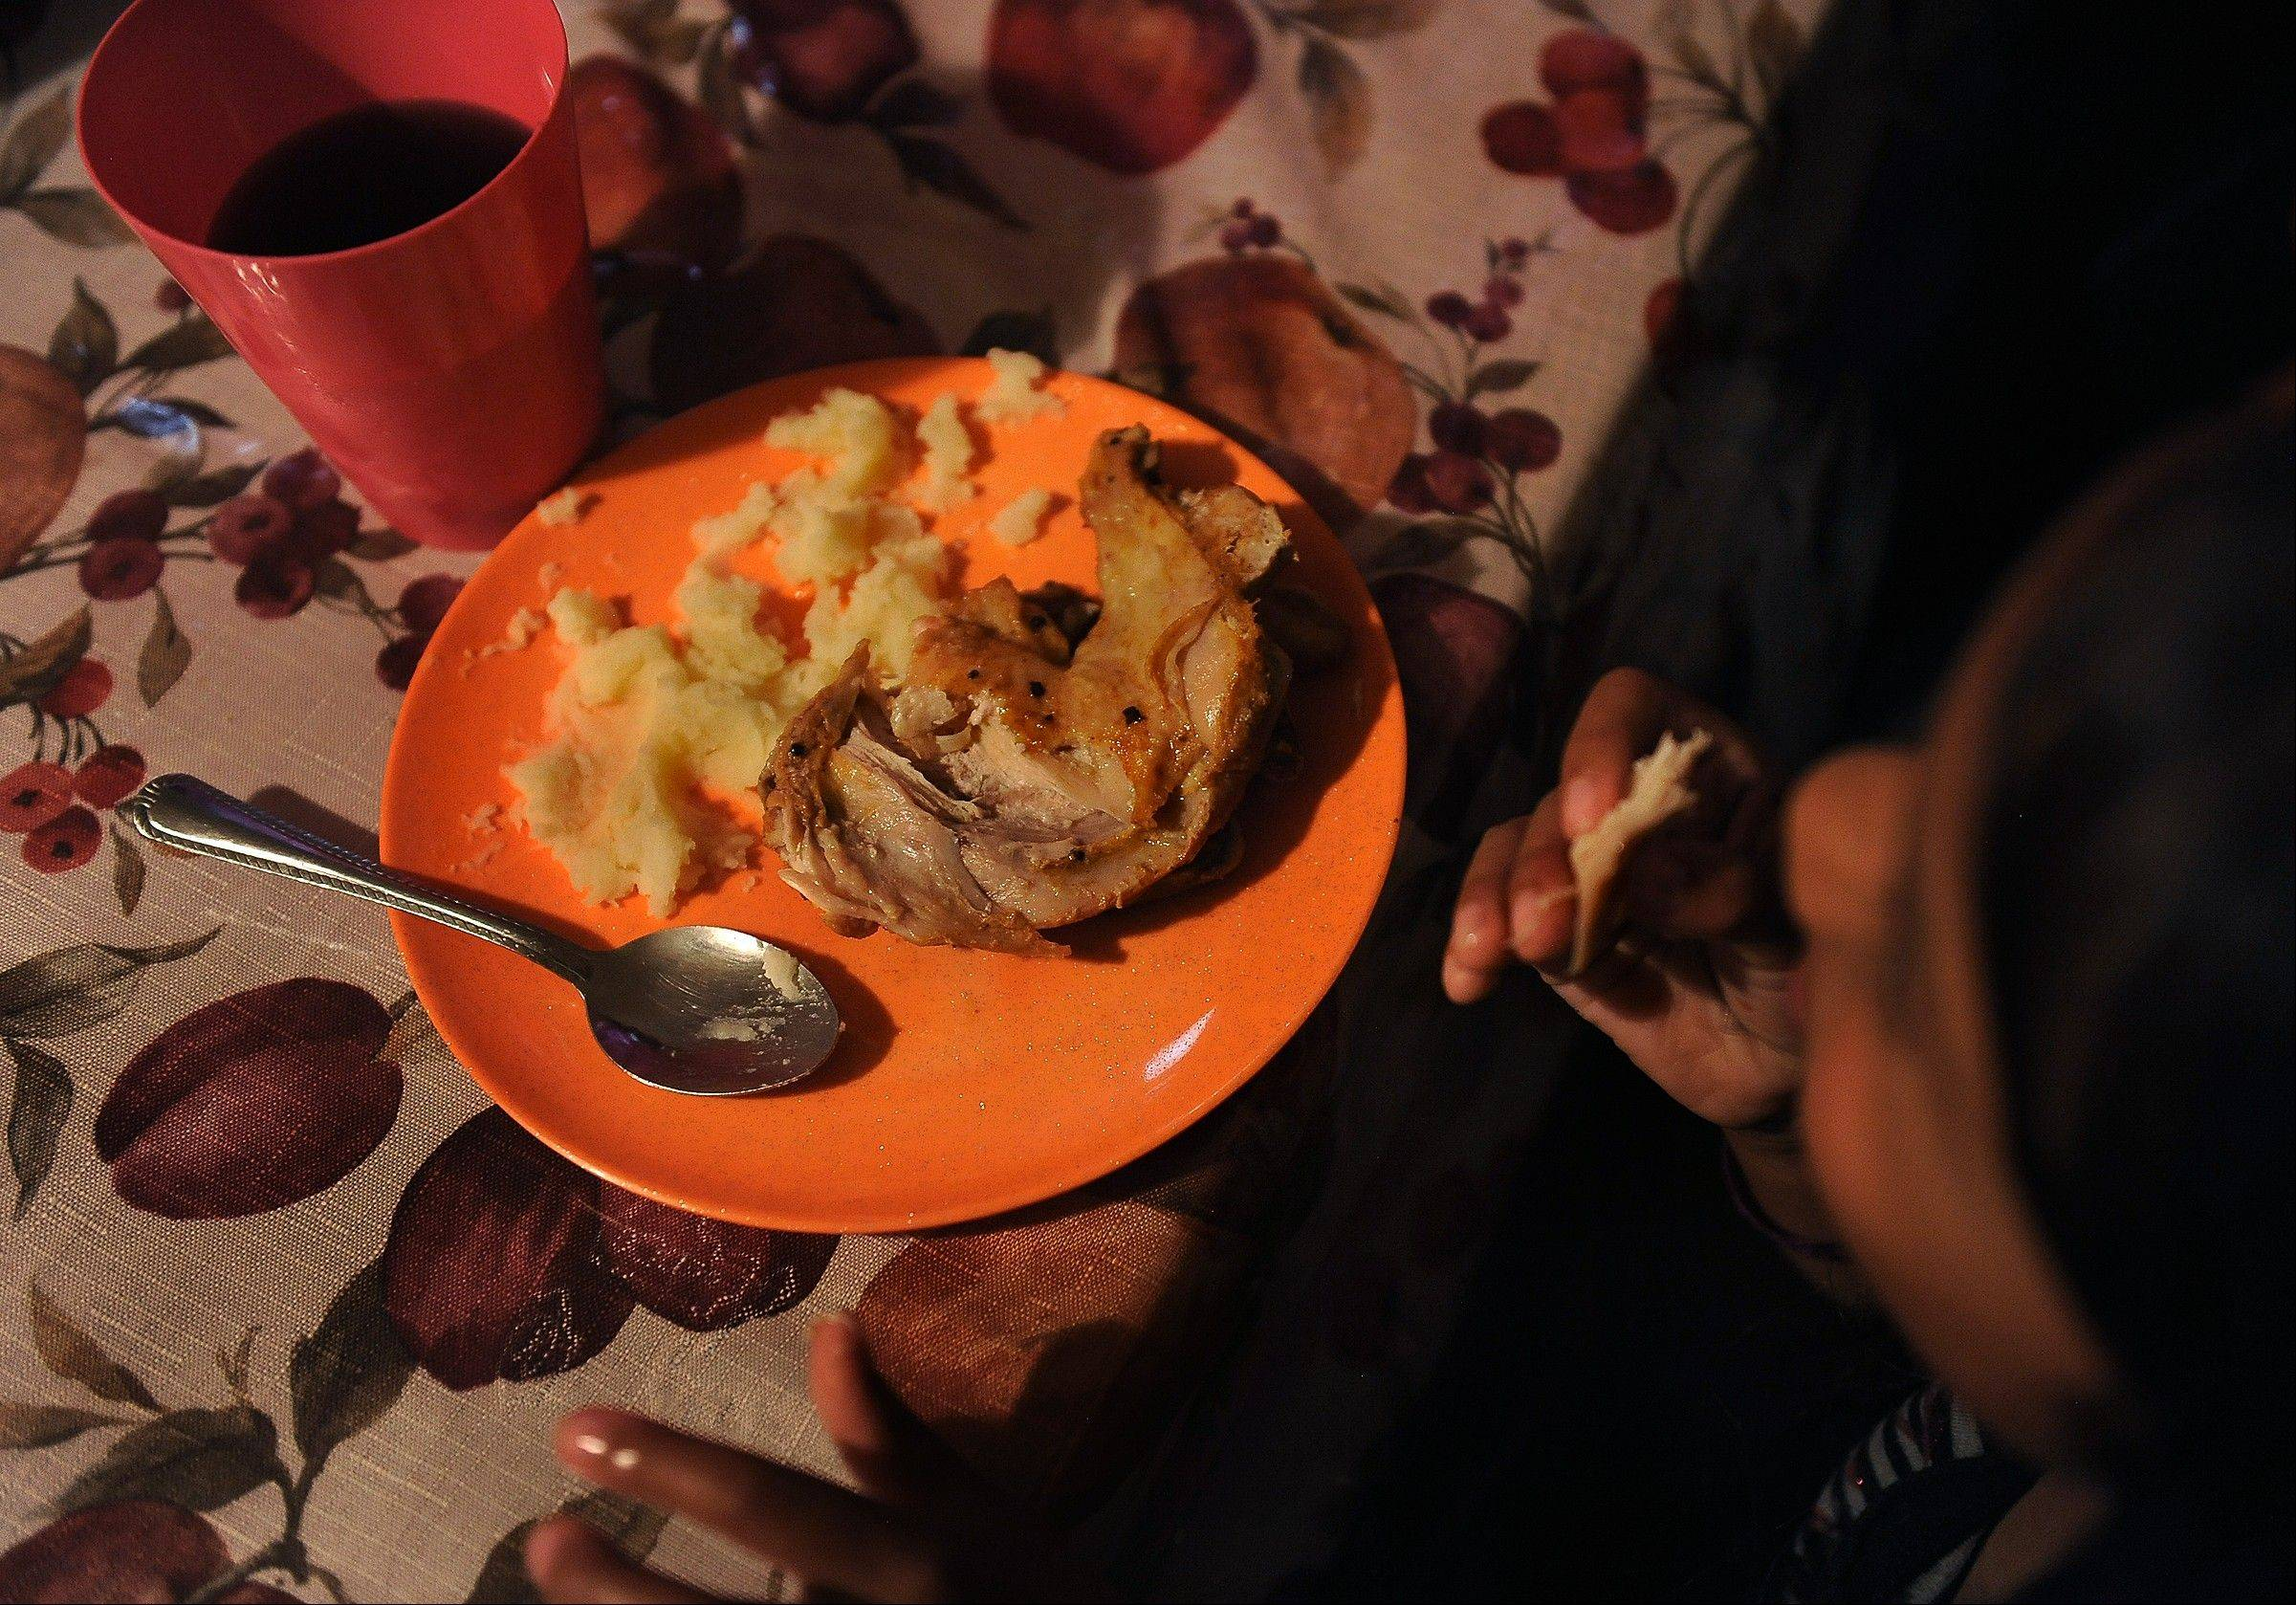 Jocelynn Banda, 6, eats chicken and mashed potatoes made by her mother for dinner.